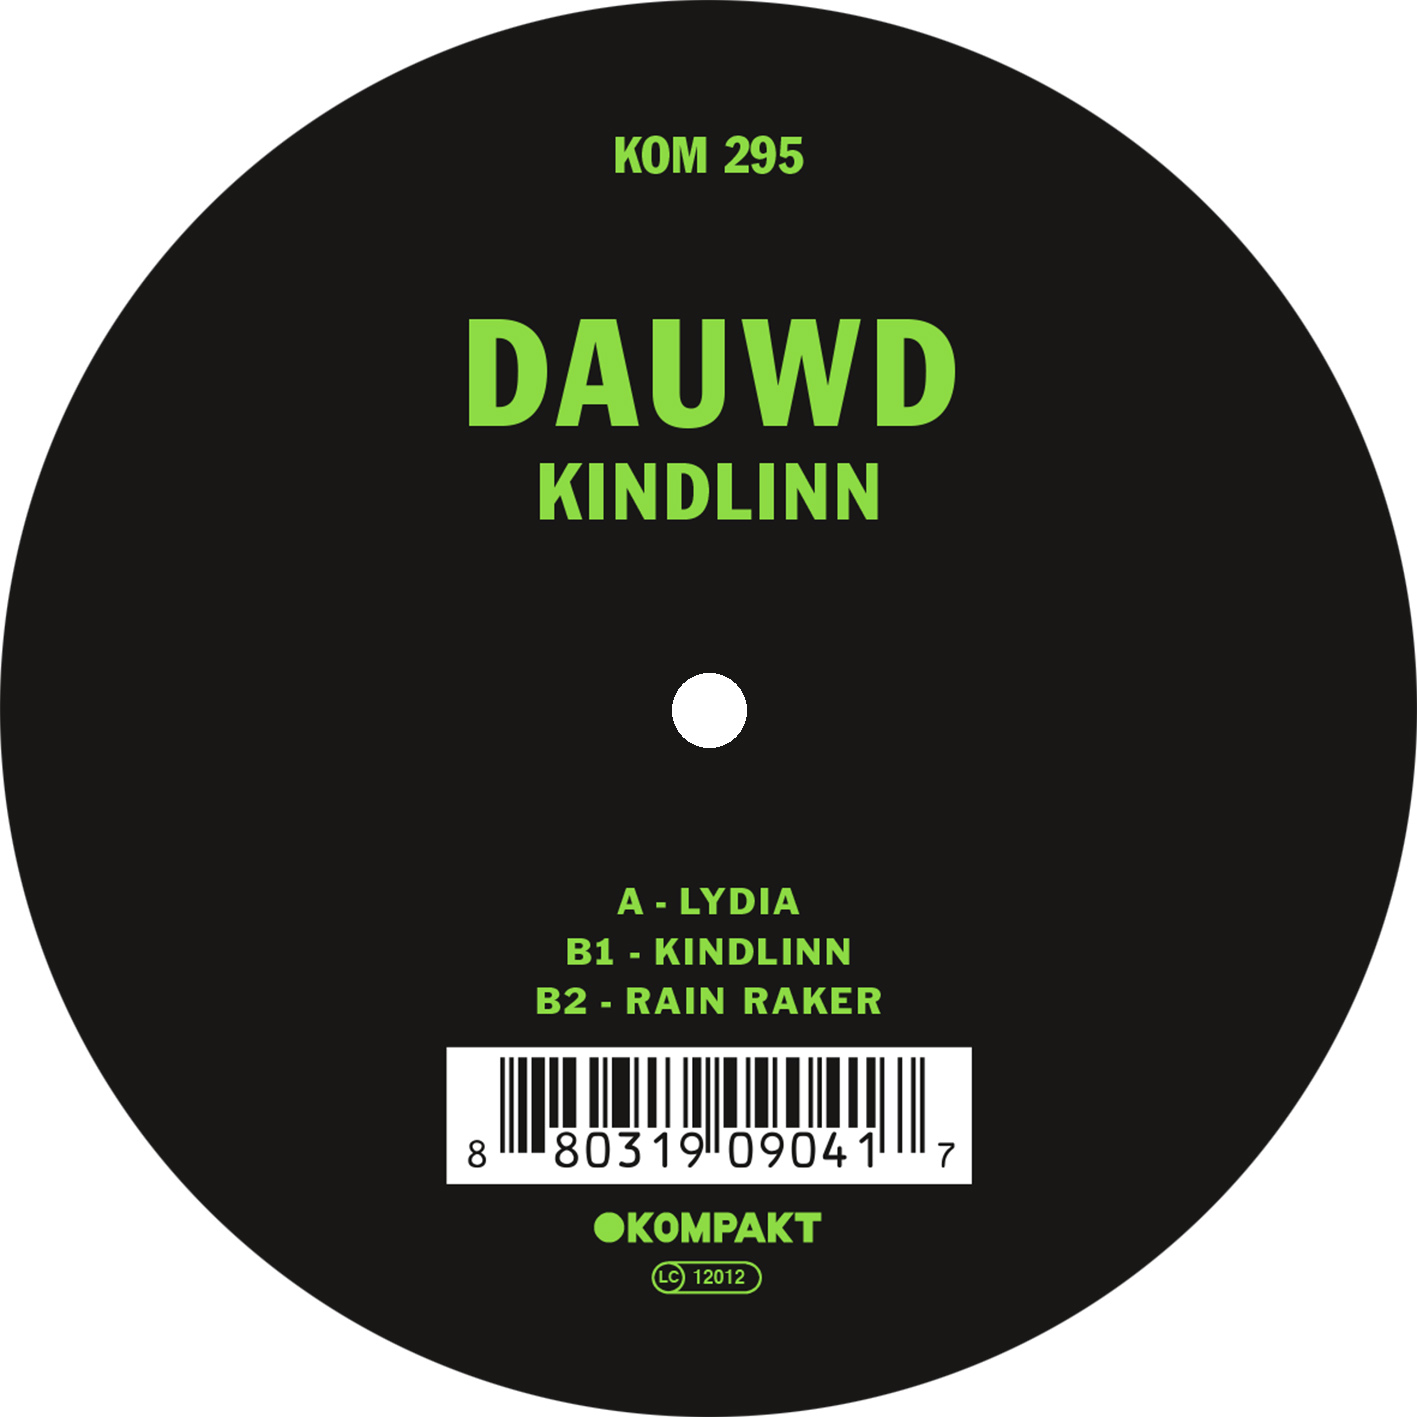 Dauwd - Kindlinn EP